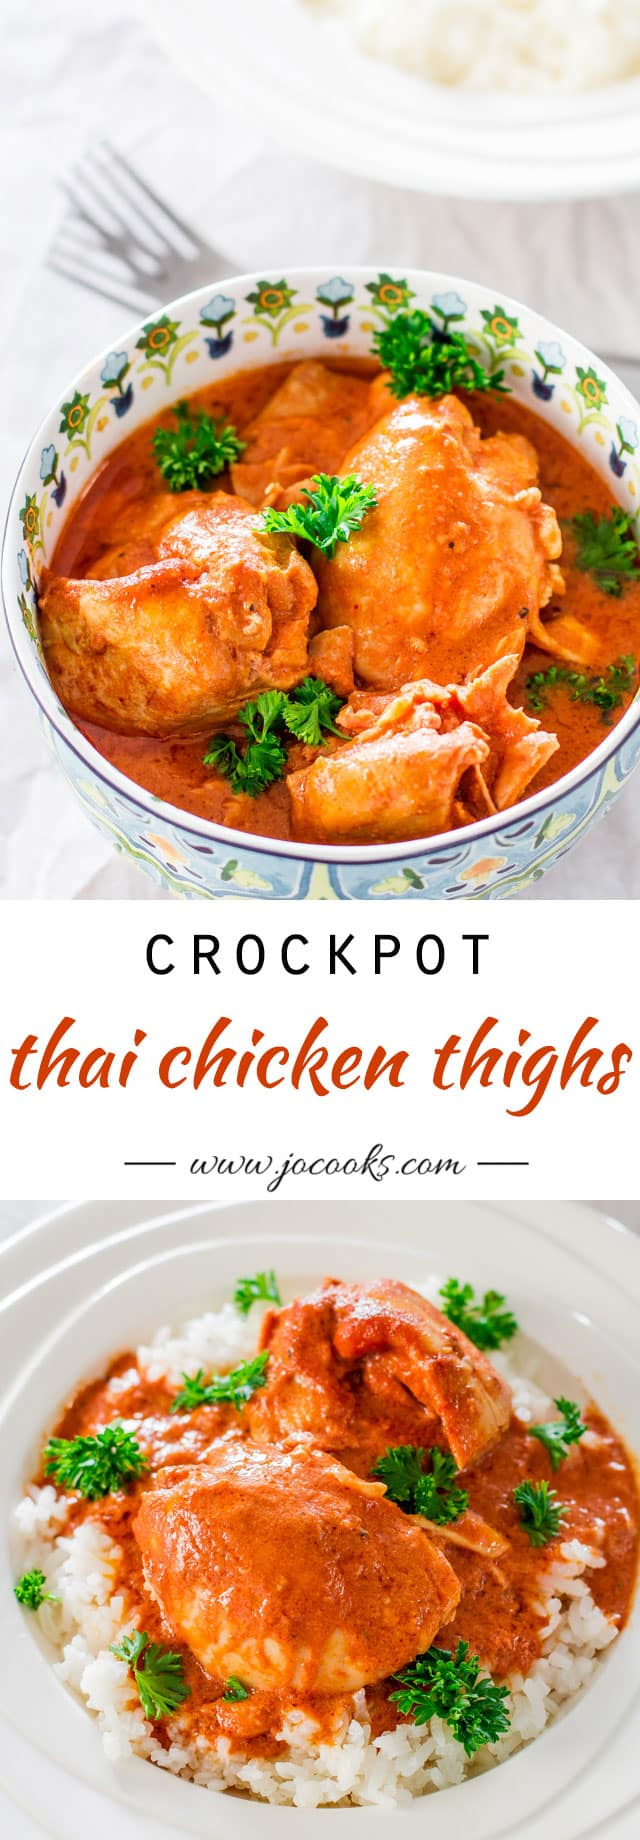 crockpot-thai-chicken-thighs-collage